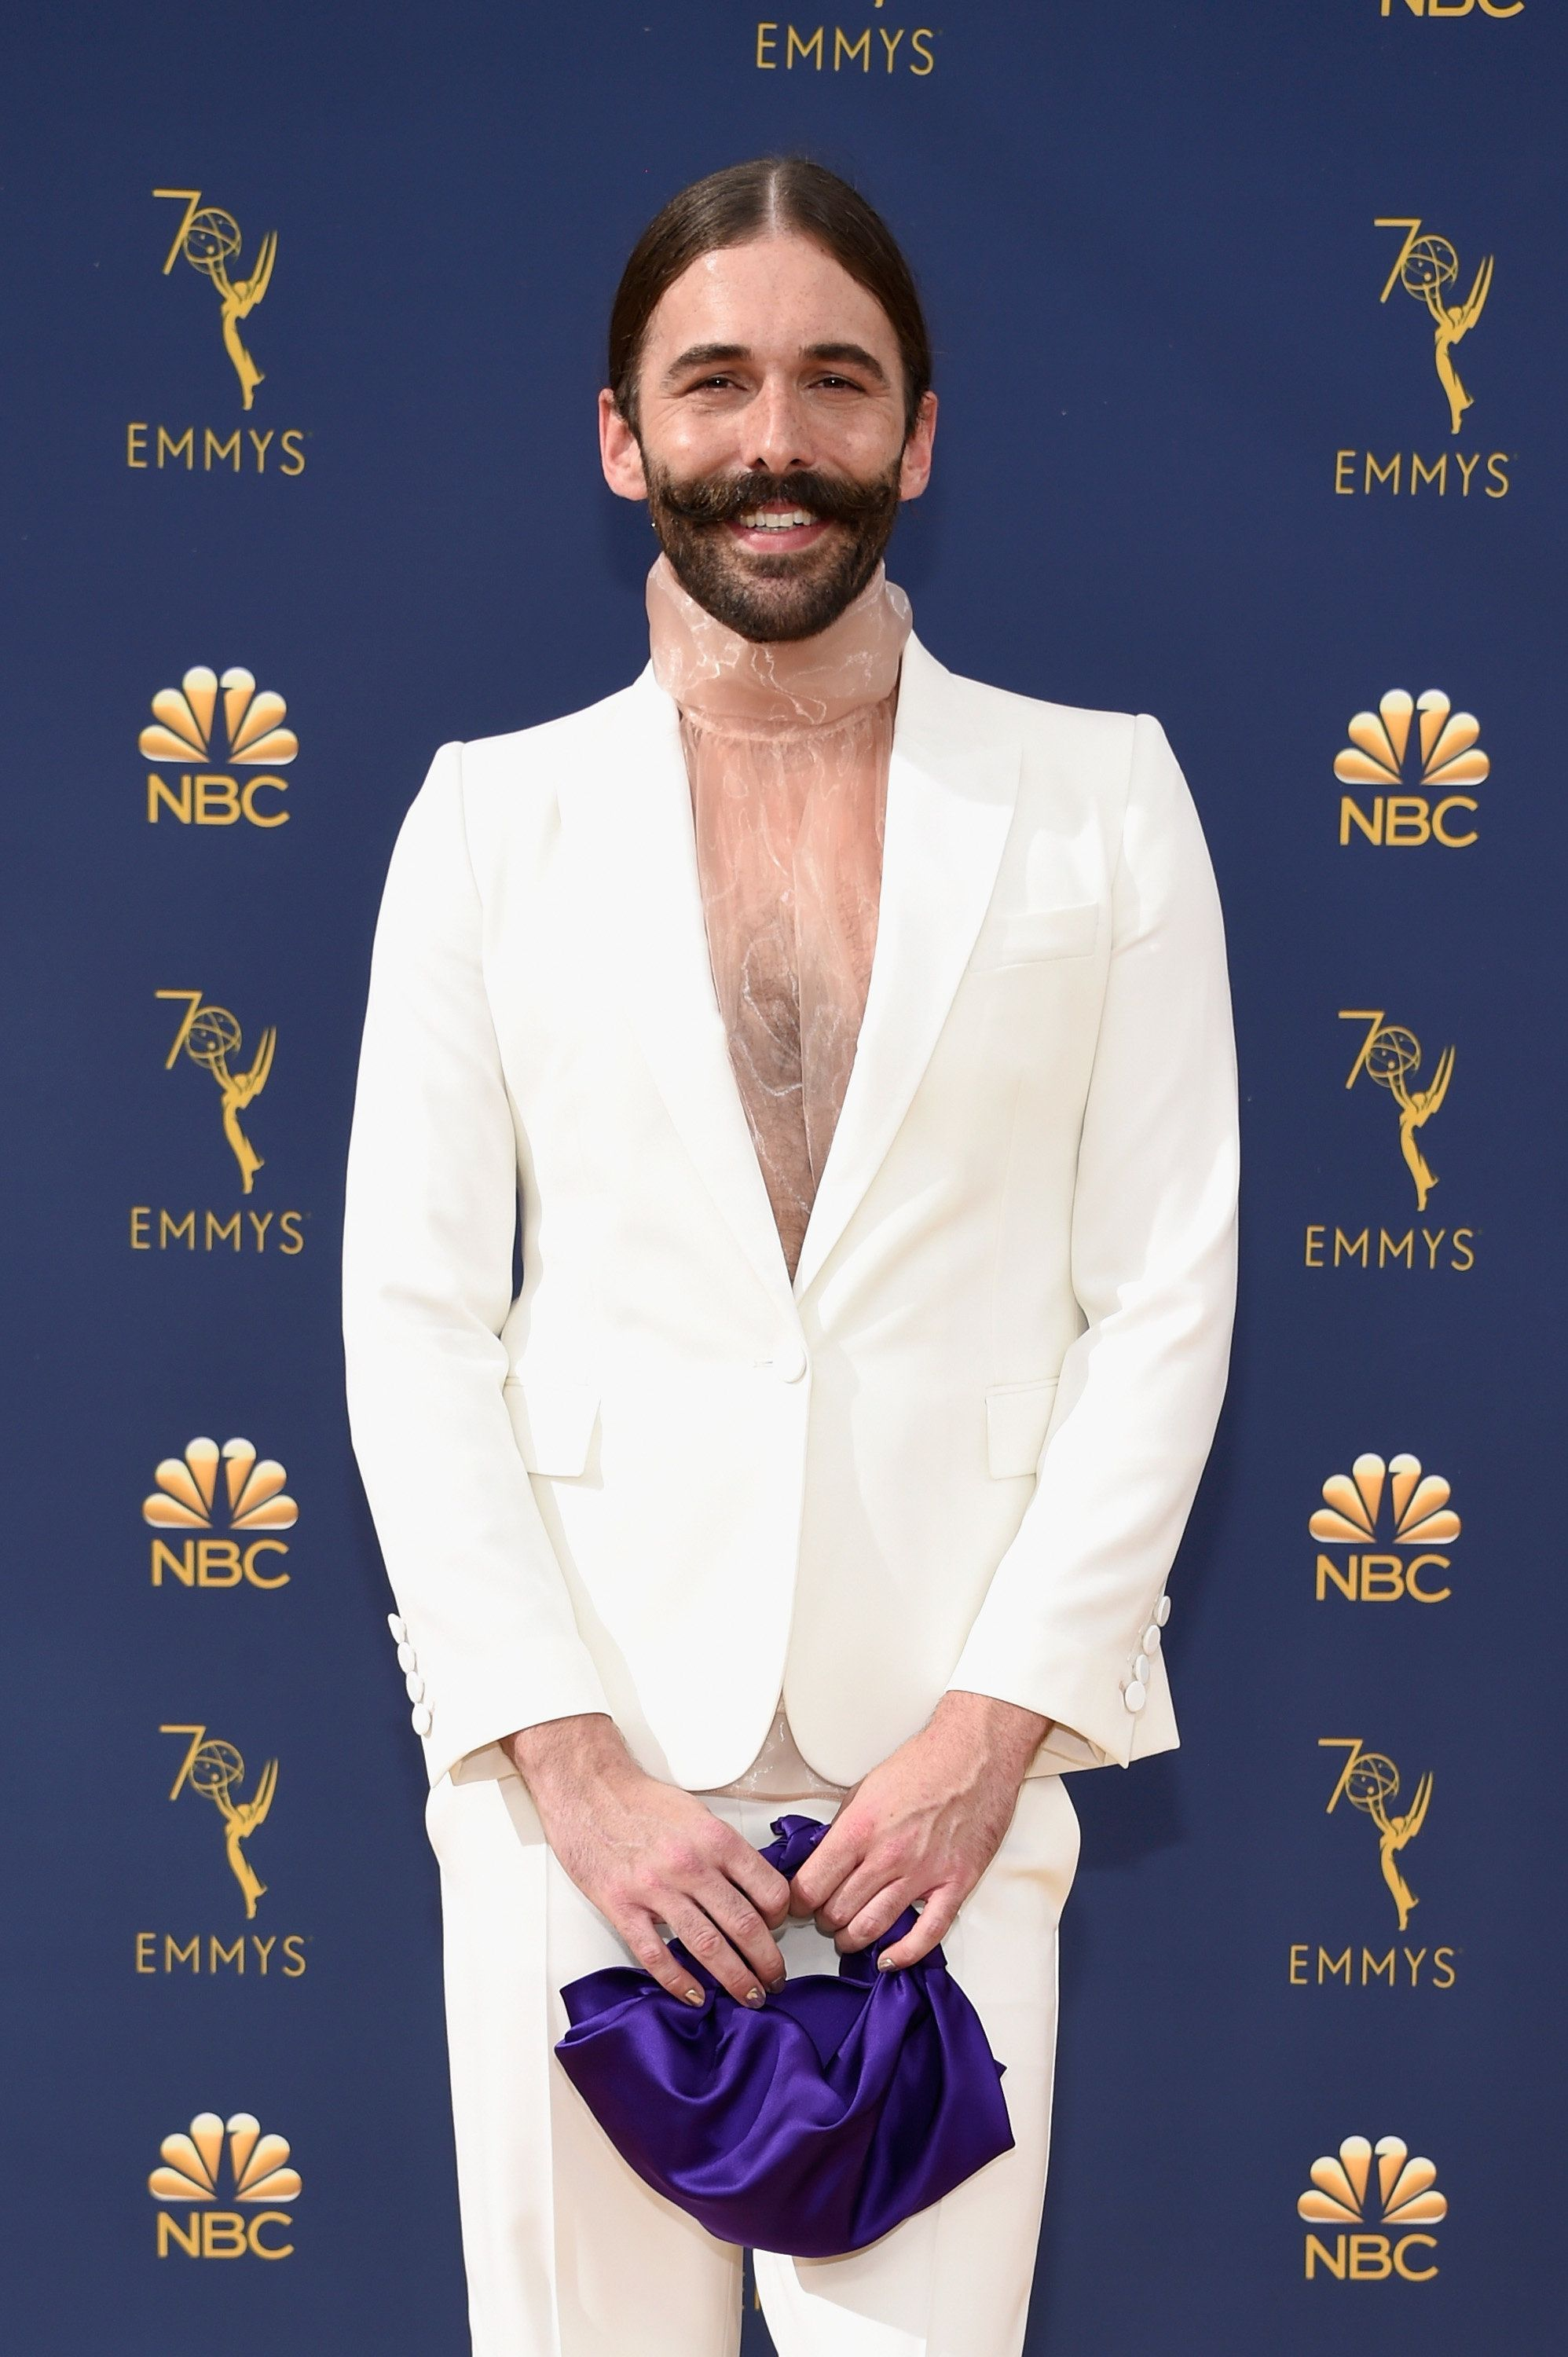 LOS ANGELES, CA - SEPTEMBER 17:  Jonathan Van Ness attends the 70th Emmy Awards at Microsoft Theater on September 17, 2018 in Los Angeles, California.  (Photo by Kevin Mazur/Getty Images)